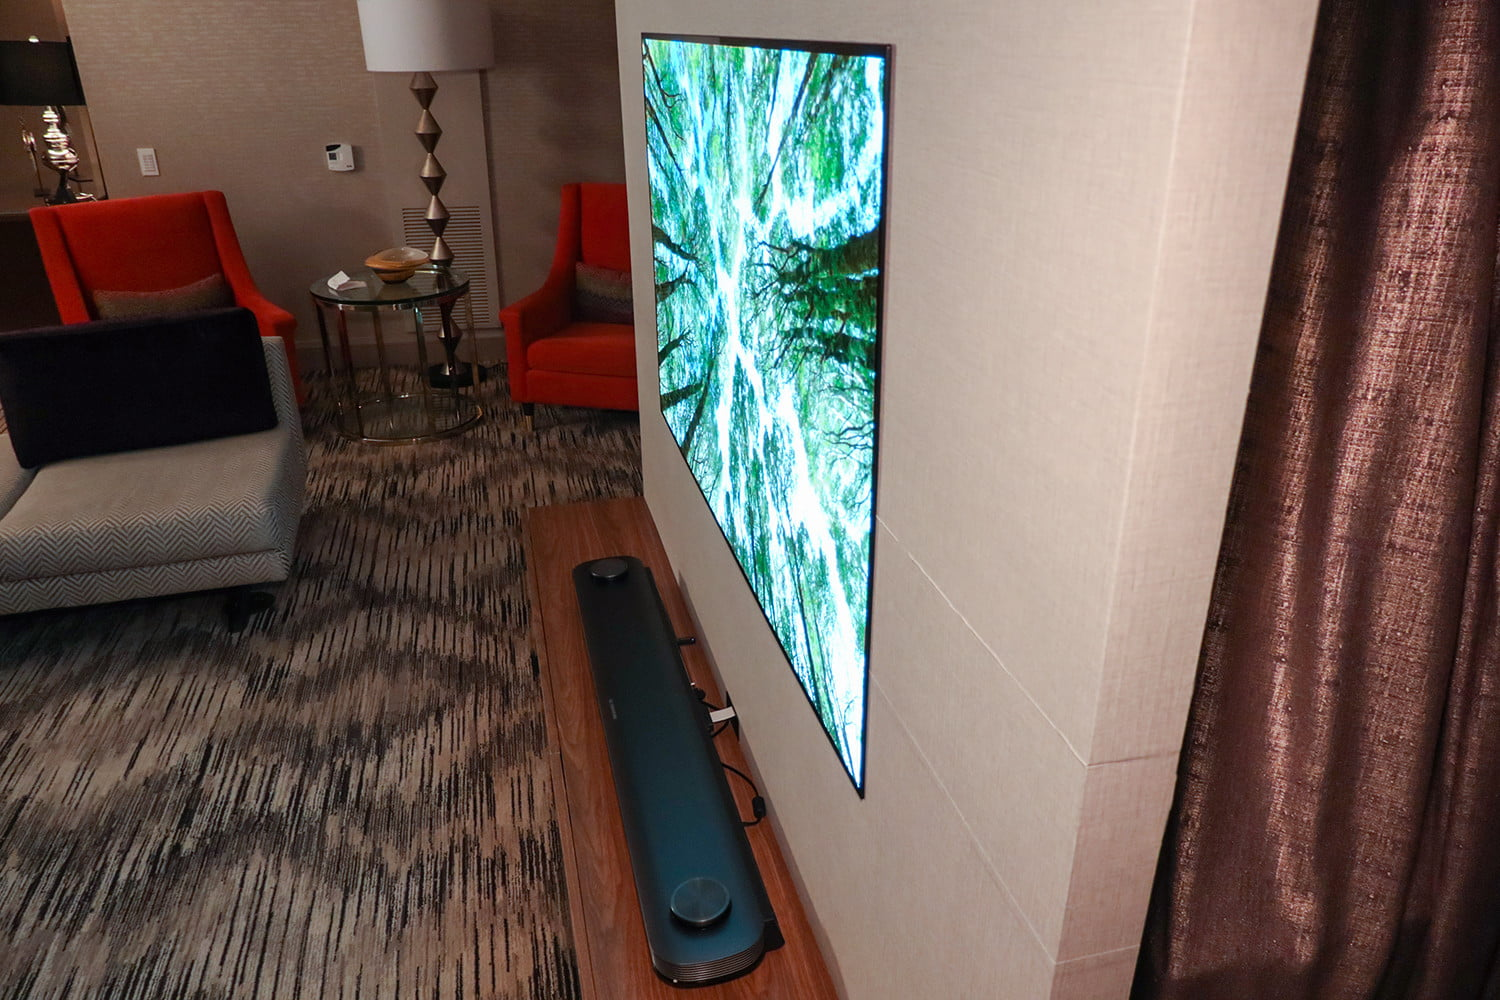 World S Thinnest Televisions Digital Trends